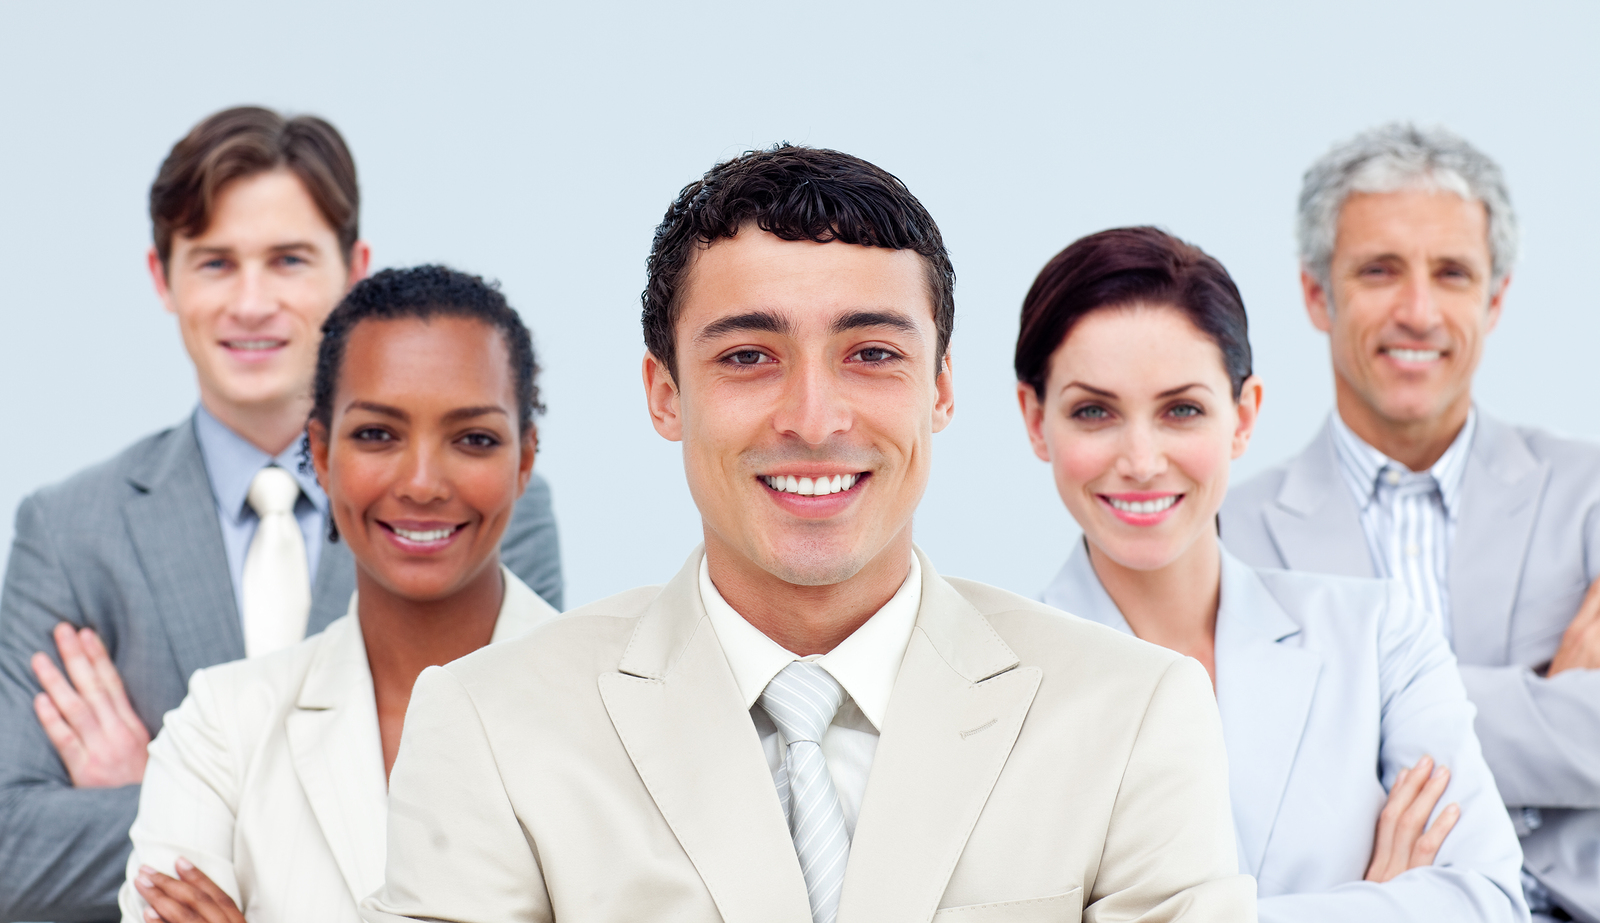 bigstock-Multi-ethnic-Business-People-S-7018966